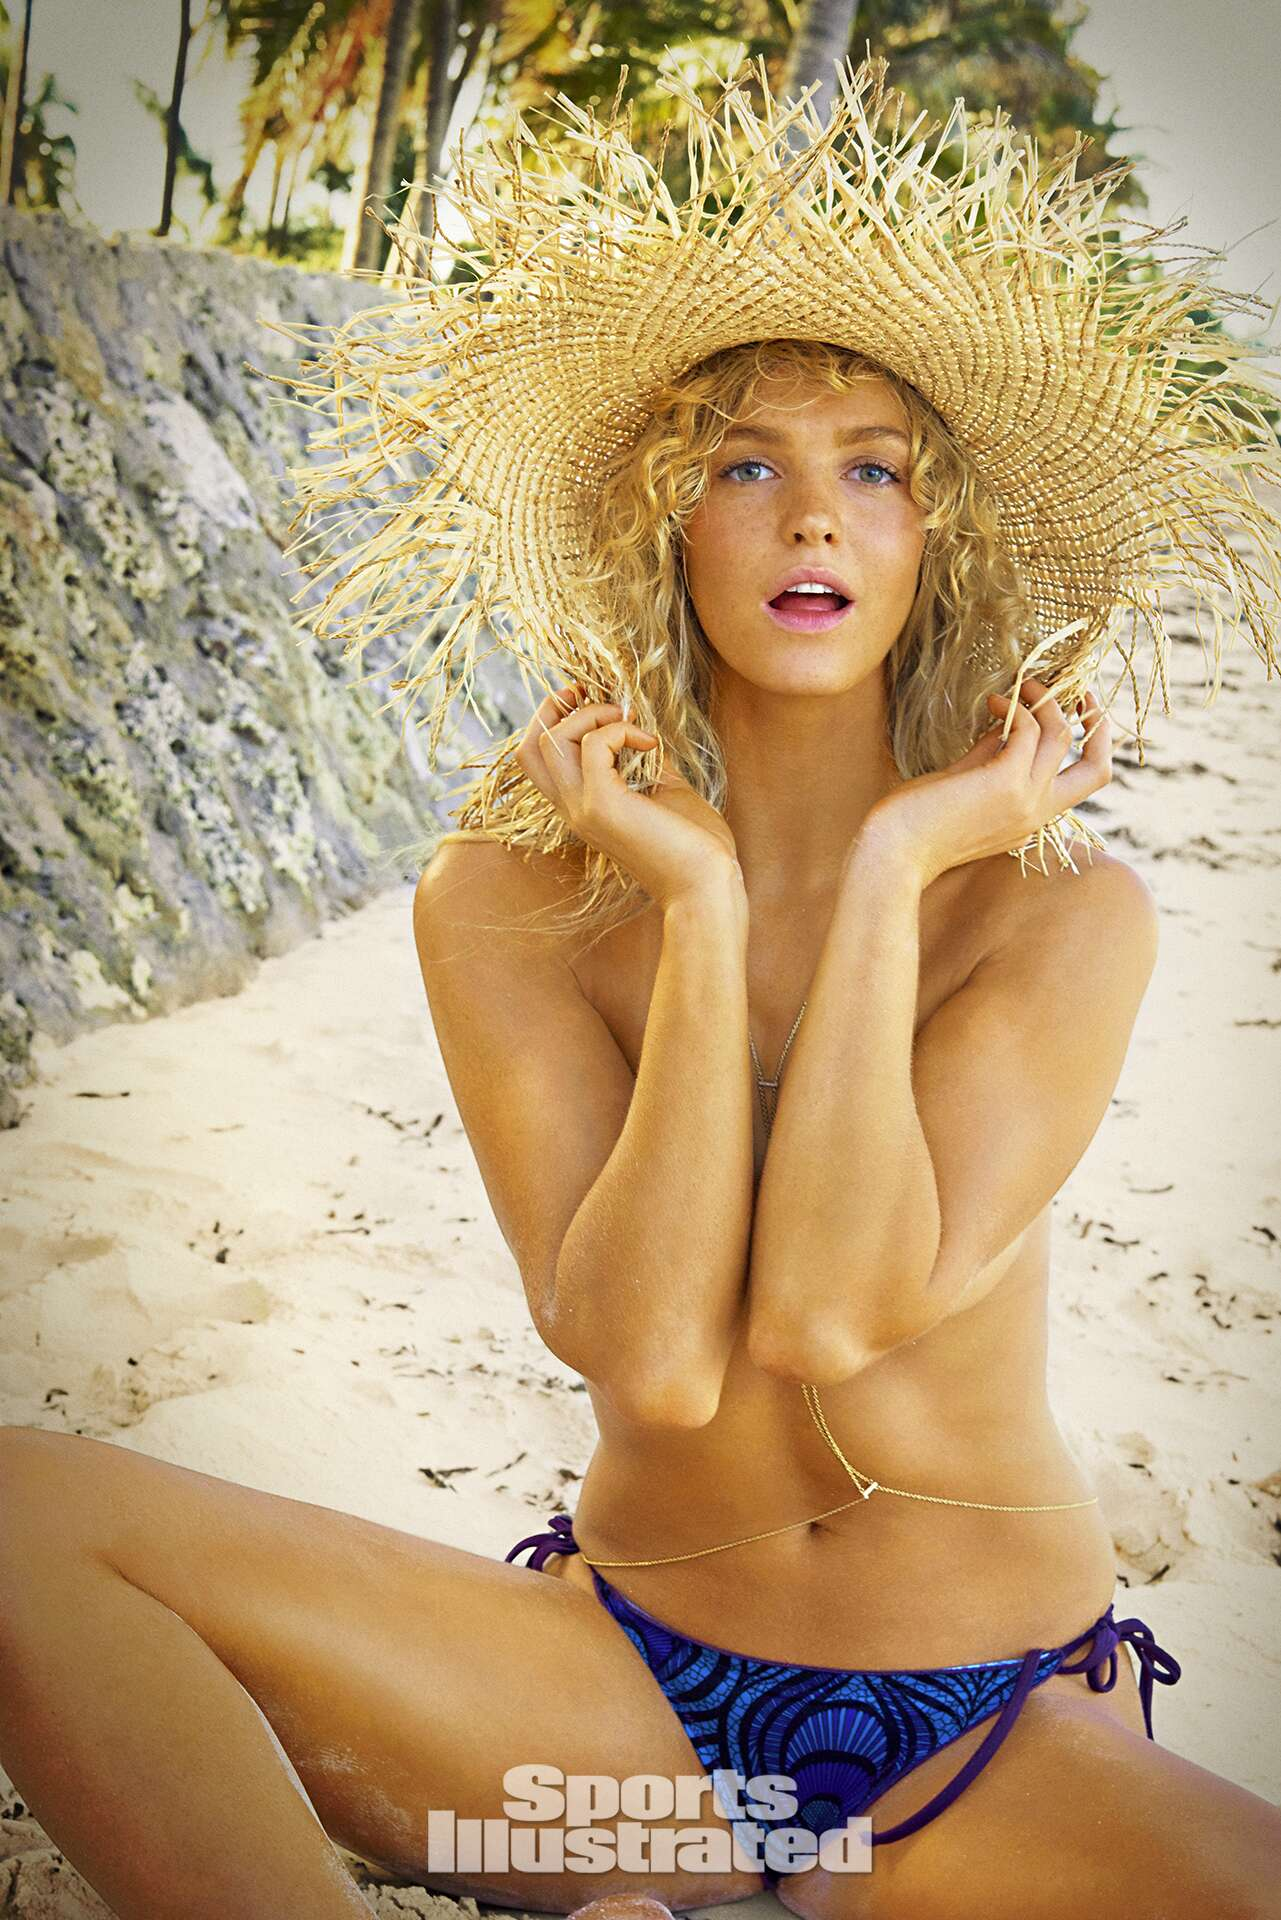 Erin Heatherton was photographed by Ruven Afanador in Zanzibar. Swimsuit by SUMMERLOVE SWIMWEAR.